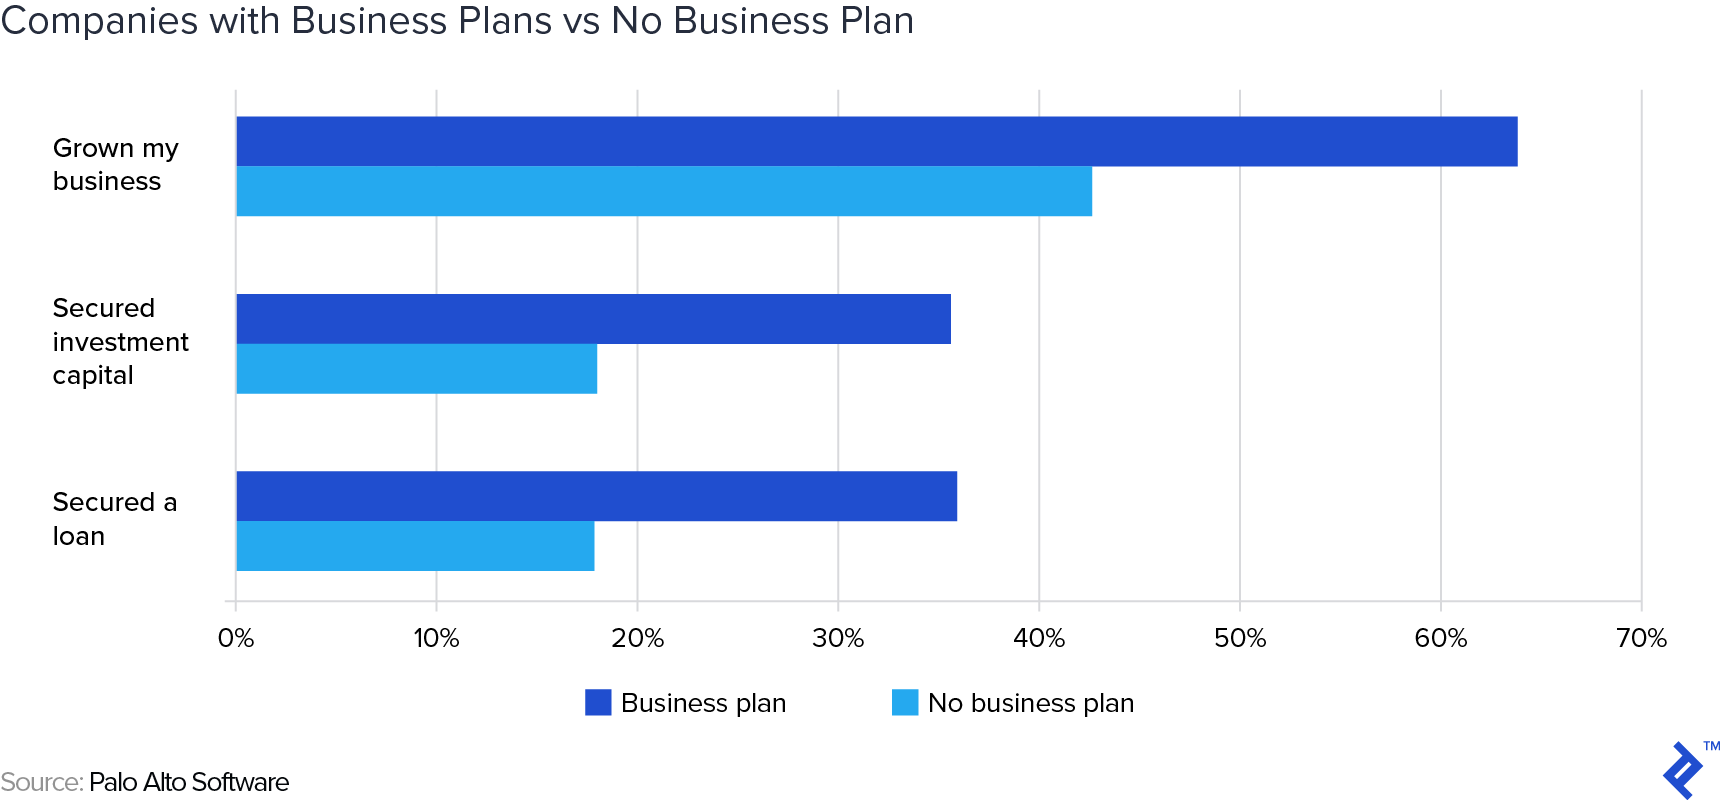 A chart comparing elements of companies with business plans to companies with no business plan